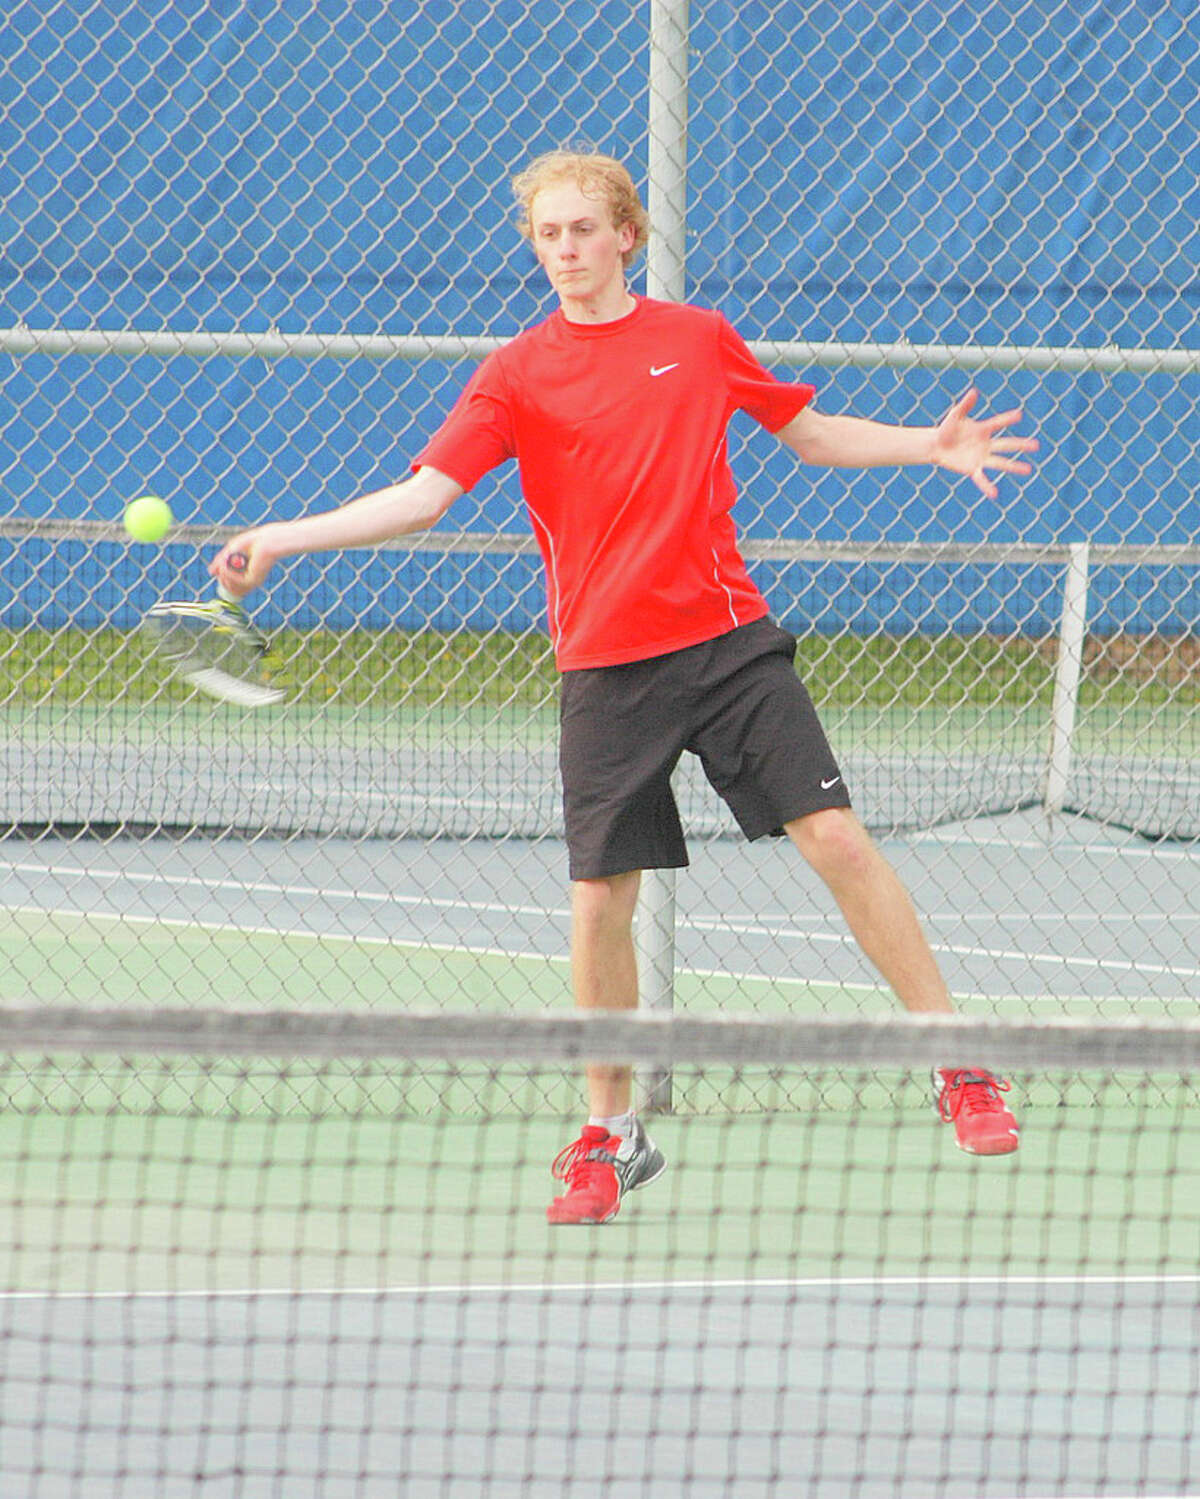 Weston freshman Henry Morris returns a volley at third doubles Tuesday against Staples. Morris and sophomore Ben Lander lost 6-3, 6-0 to seniors Jehnir Hafiz and Josh Kaseff in the Trojans' 7-0 loss to the Wreckers.